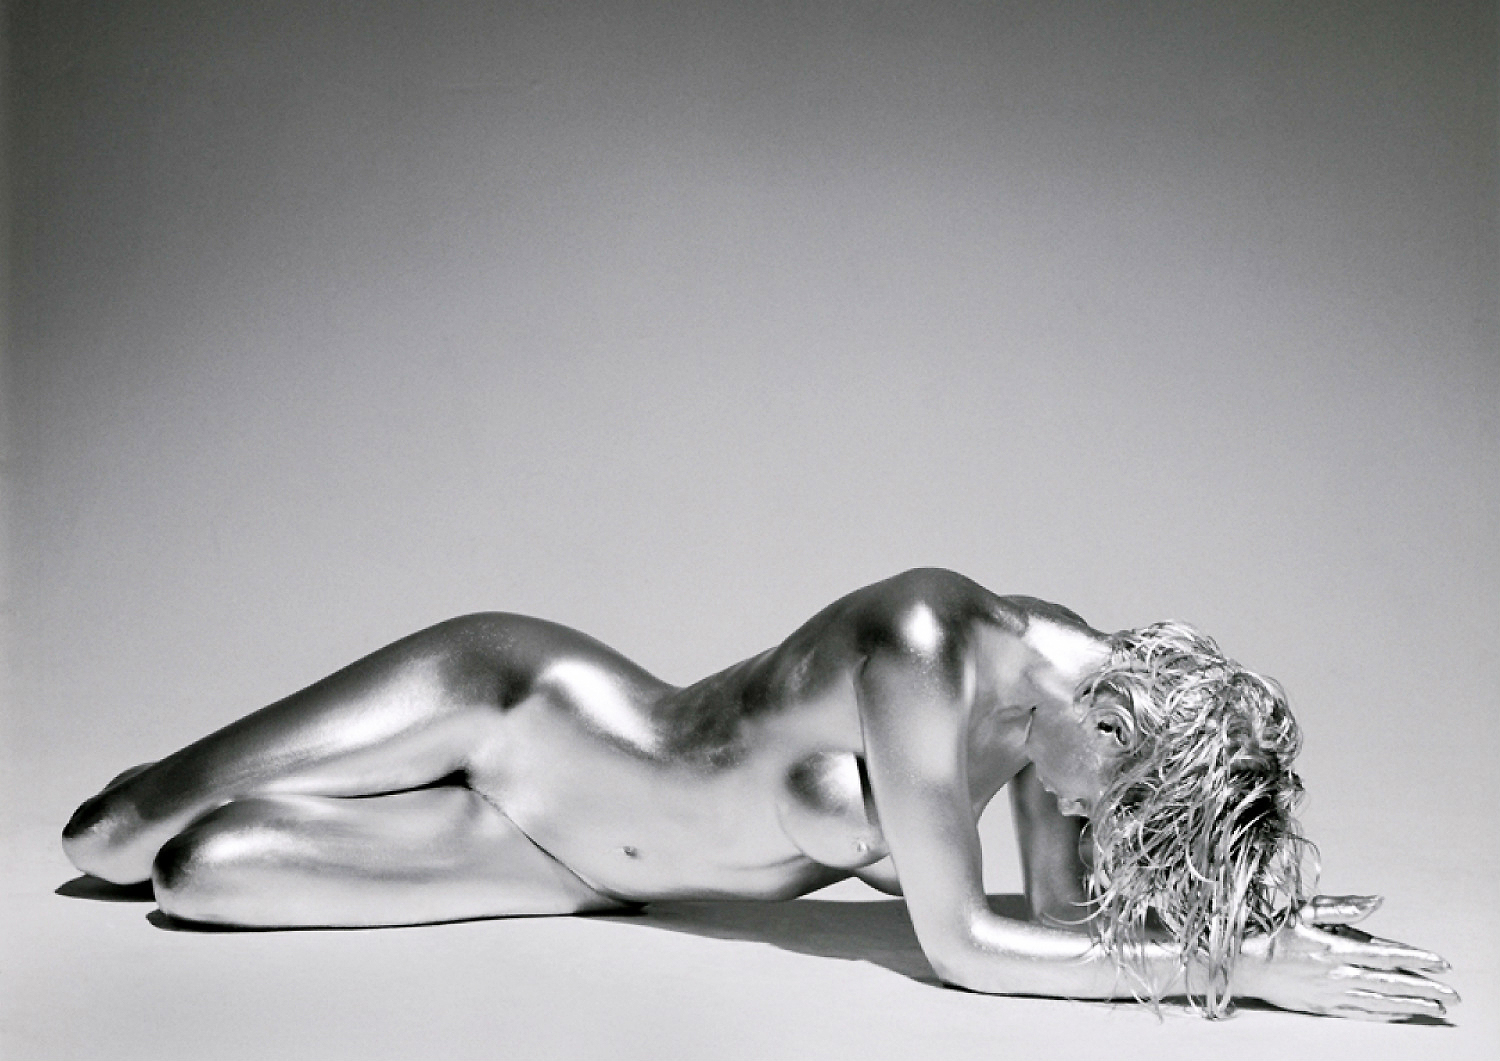 guido argentini fashion photography silver model